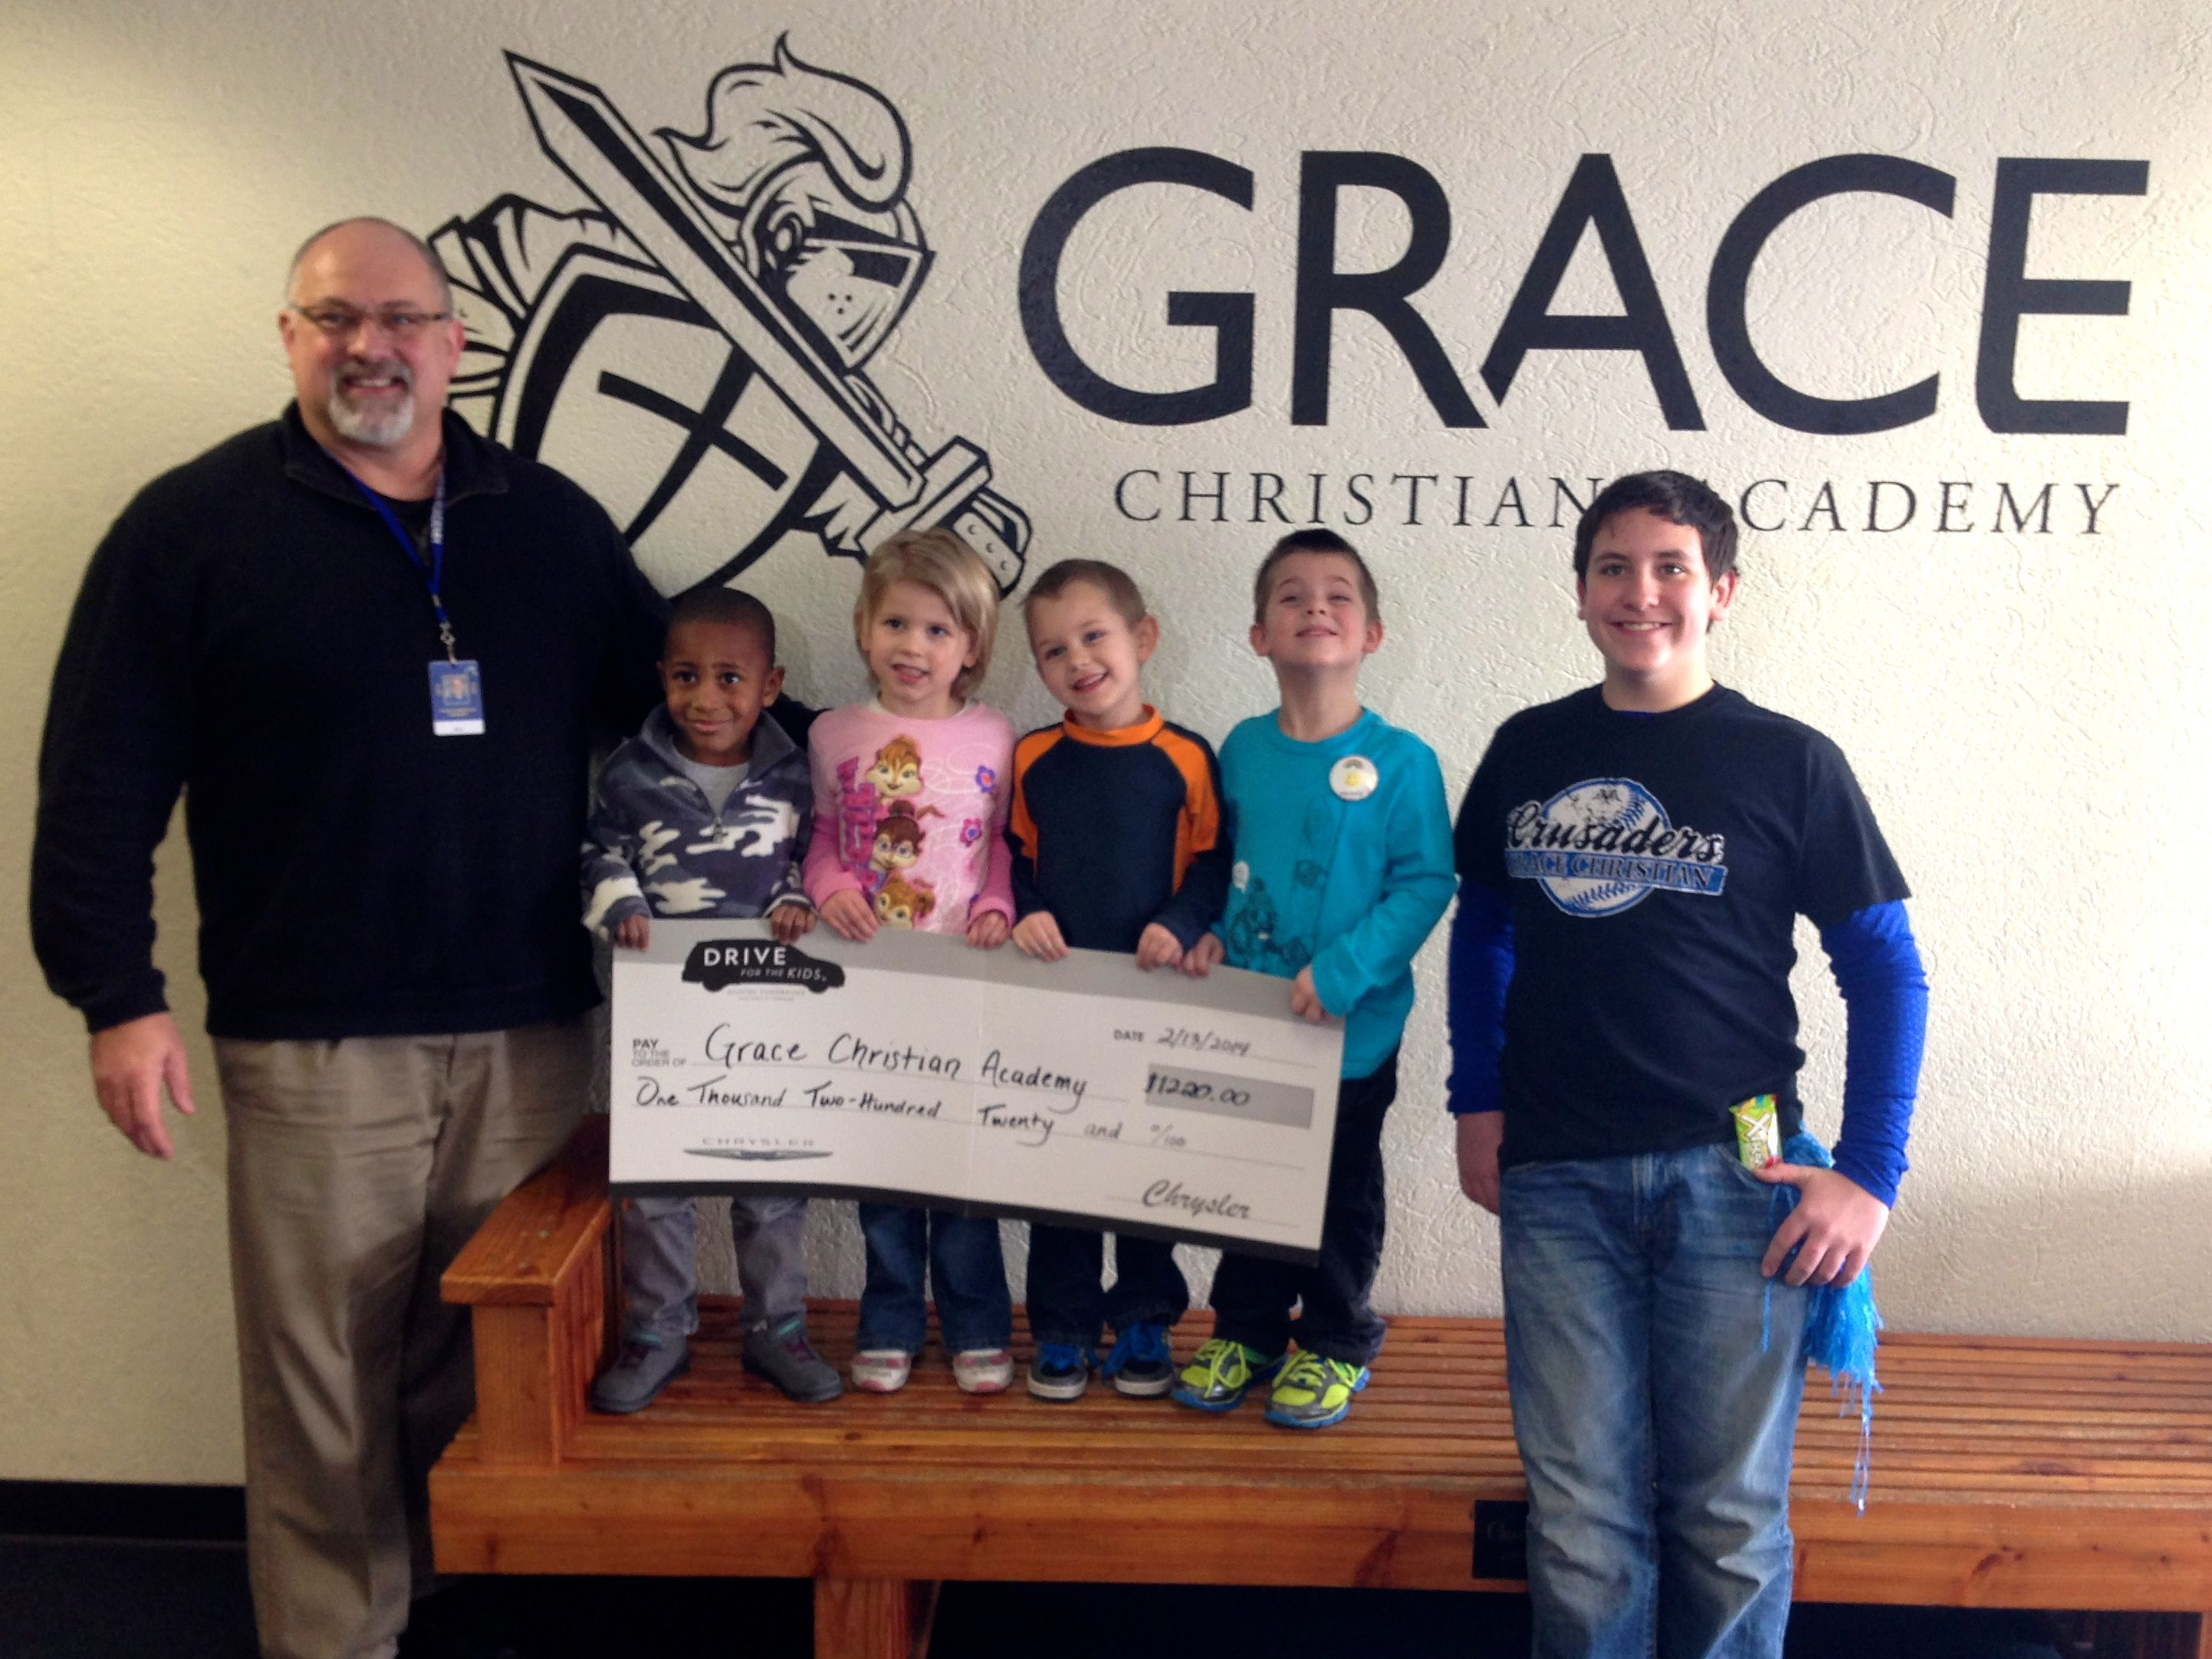 In November, Taylor helped Grace Christian Academy raise money through Chrysler's Drive for the Kids program. Today, they received their check for $1,220! We had a great time at their annual craft fair and enjoyed being able to help kids in our community.